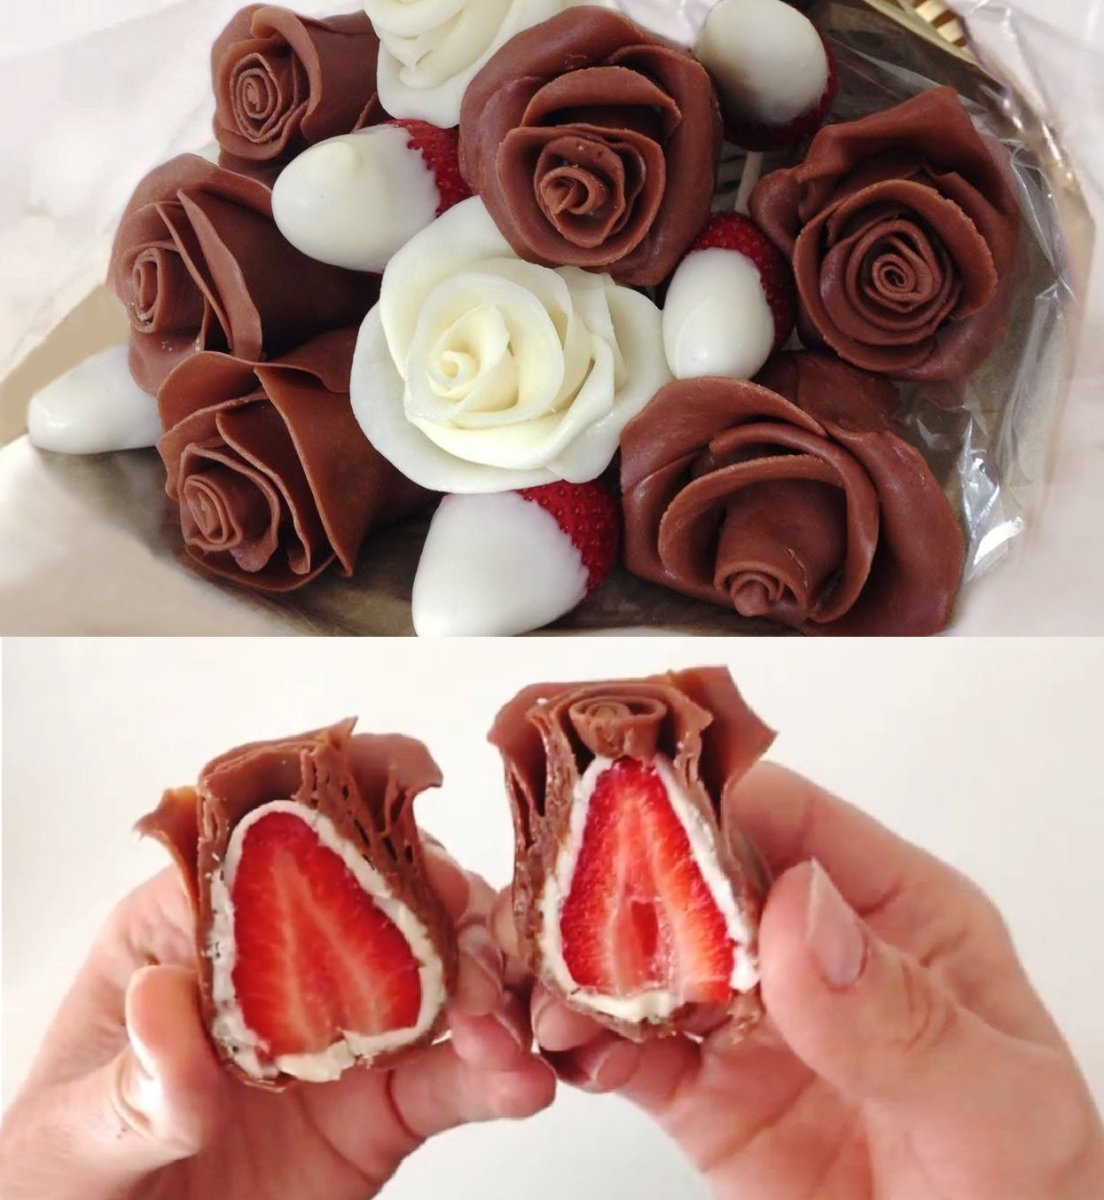 Gorgeous chocolate strawberry bouquet of roses in a cute bouquet.